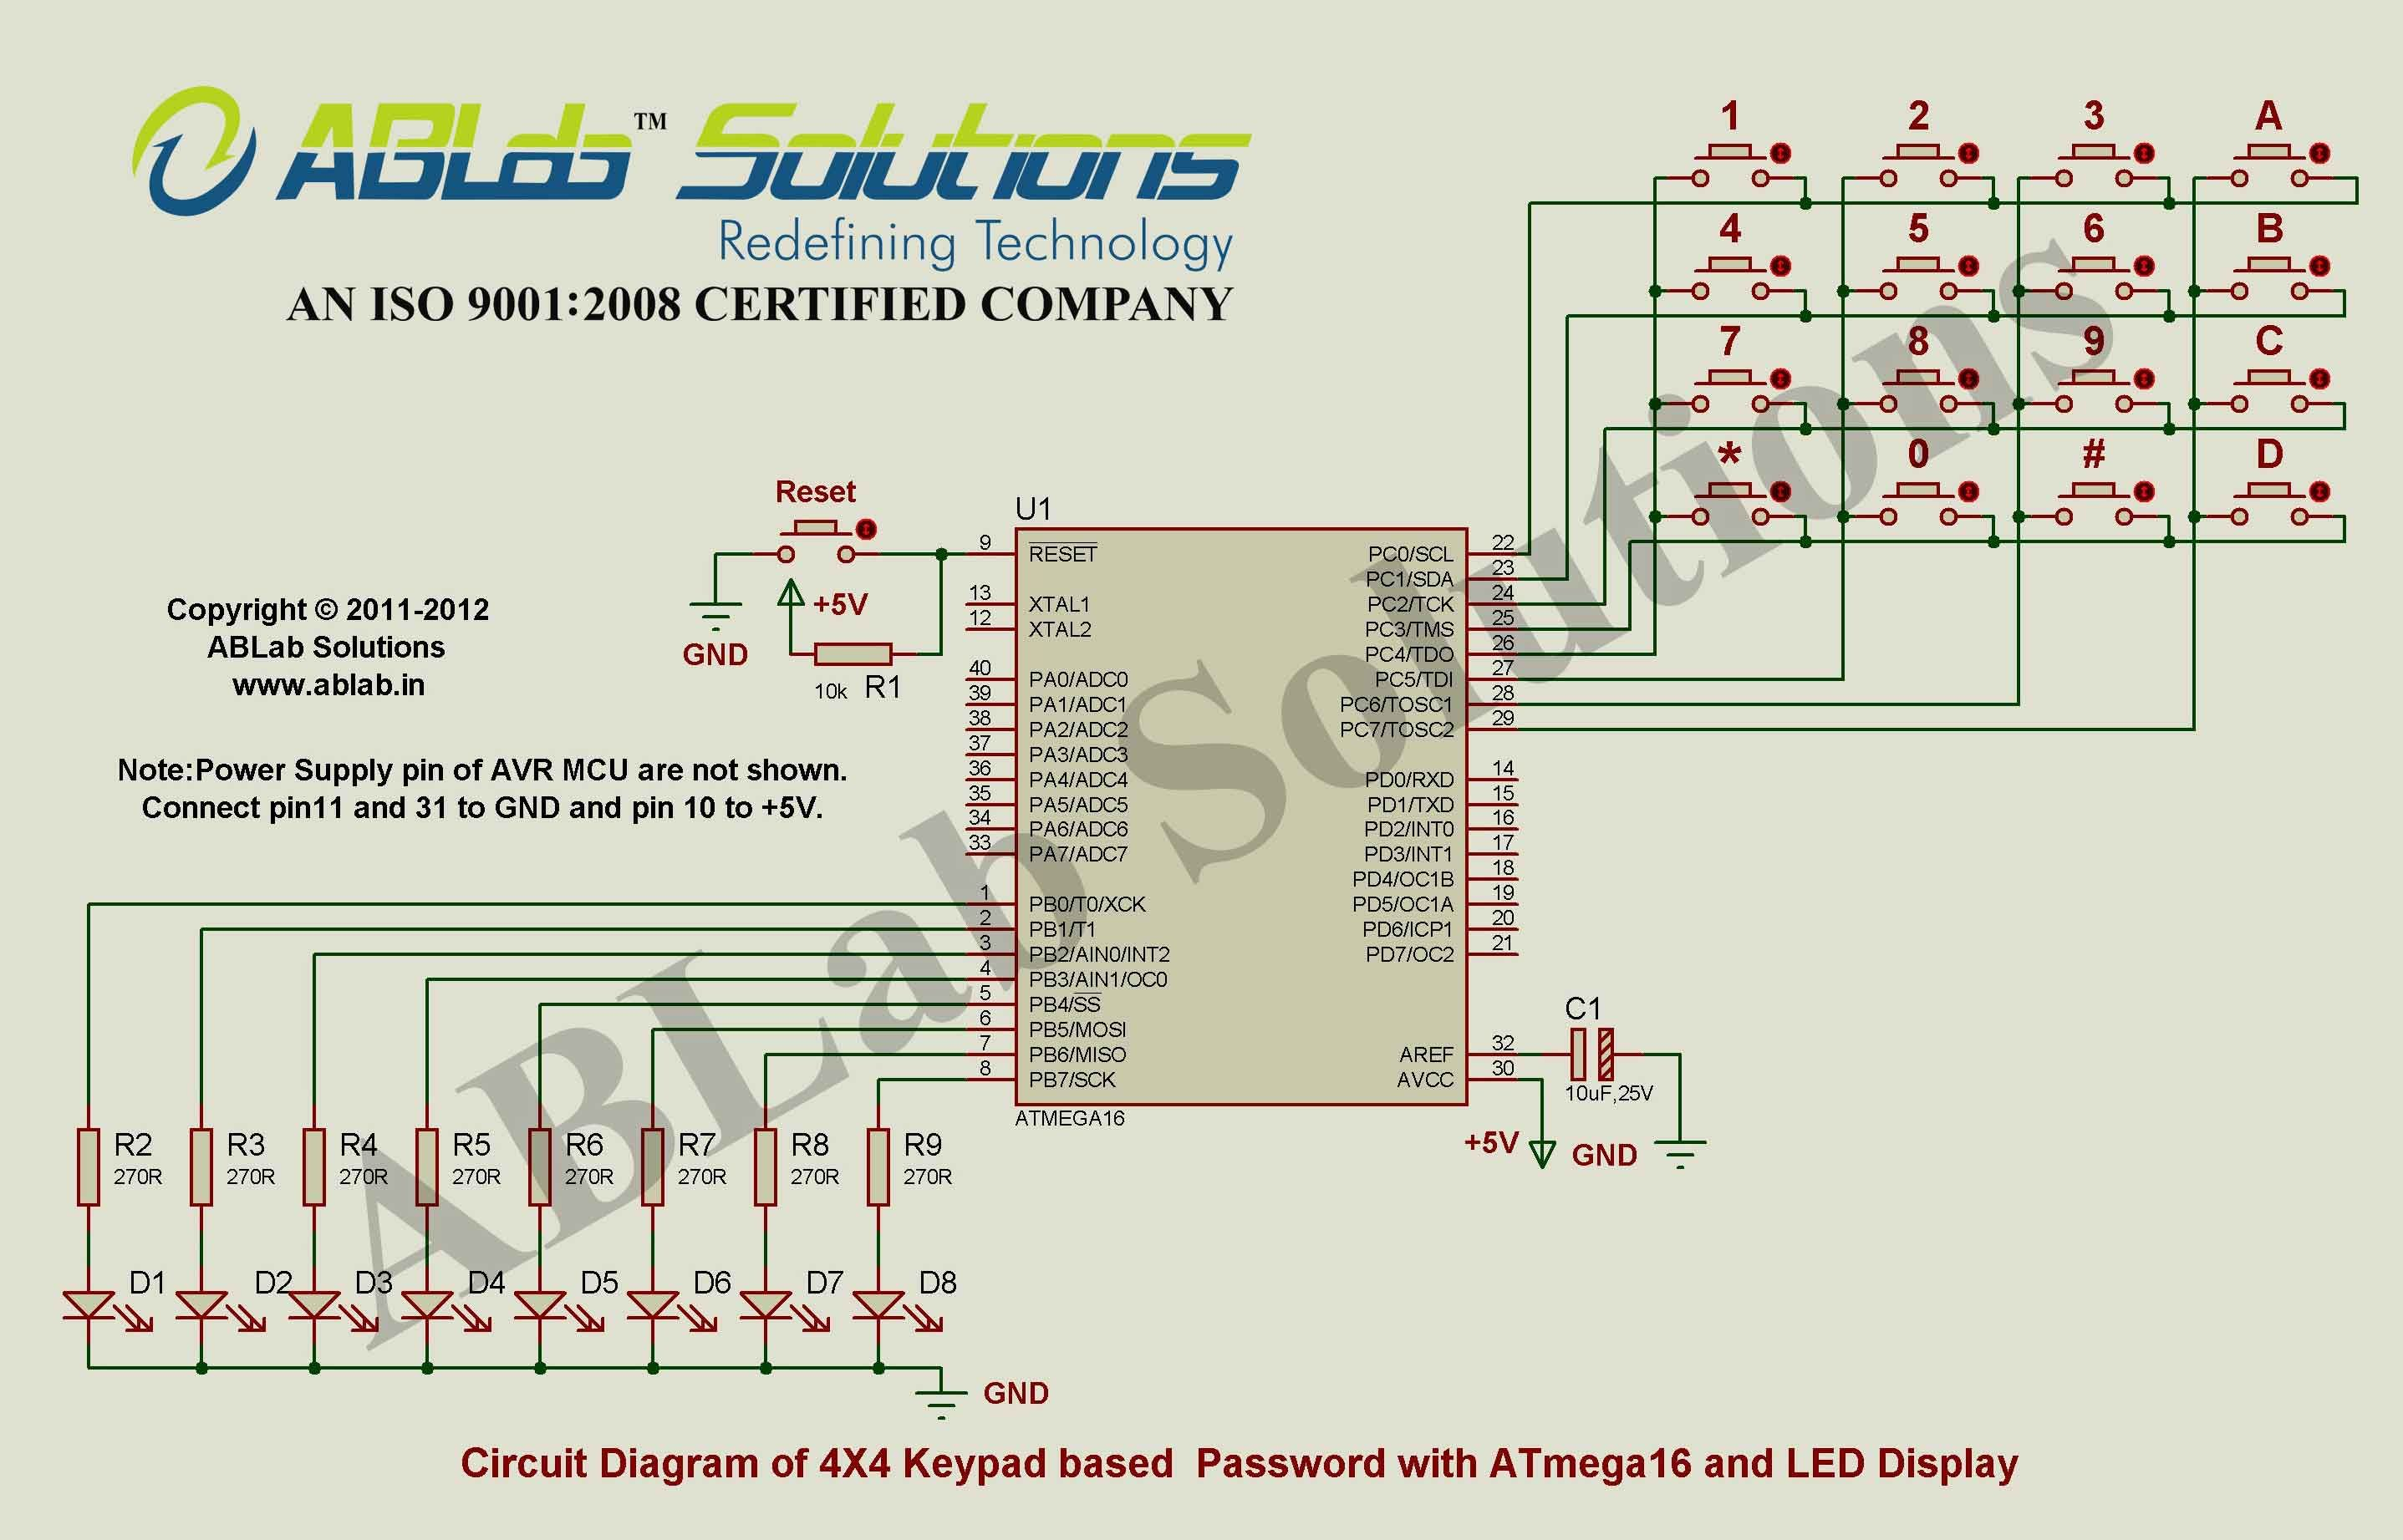 hight resolution of x4 keypad based password with avr atmega16 microcontroller and led display circuit diagram ablab solutions